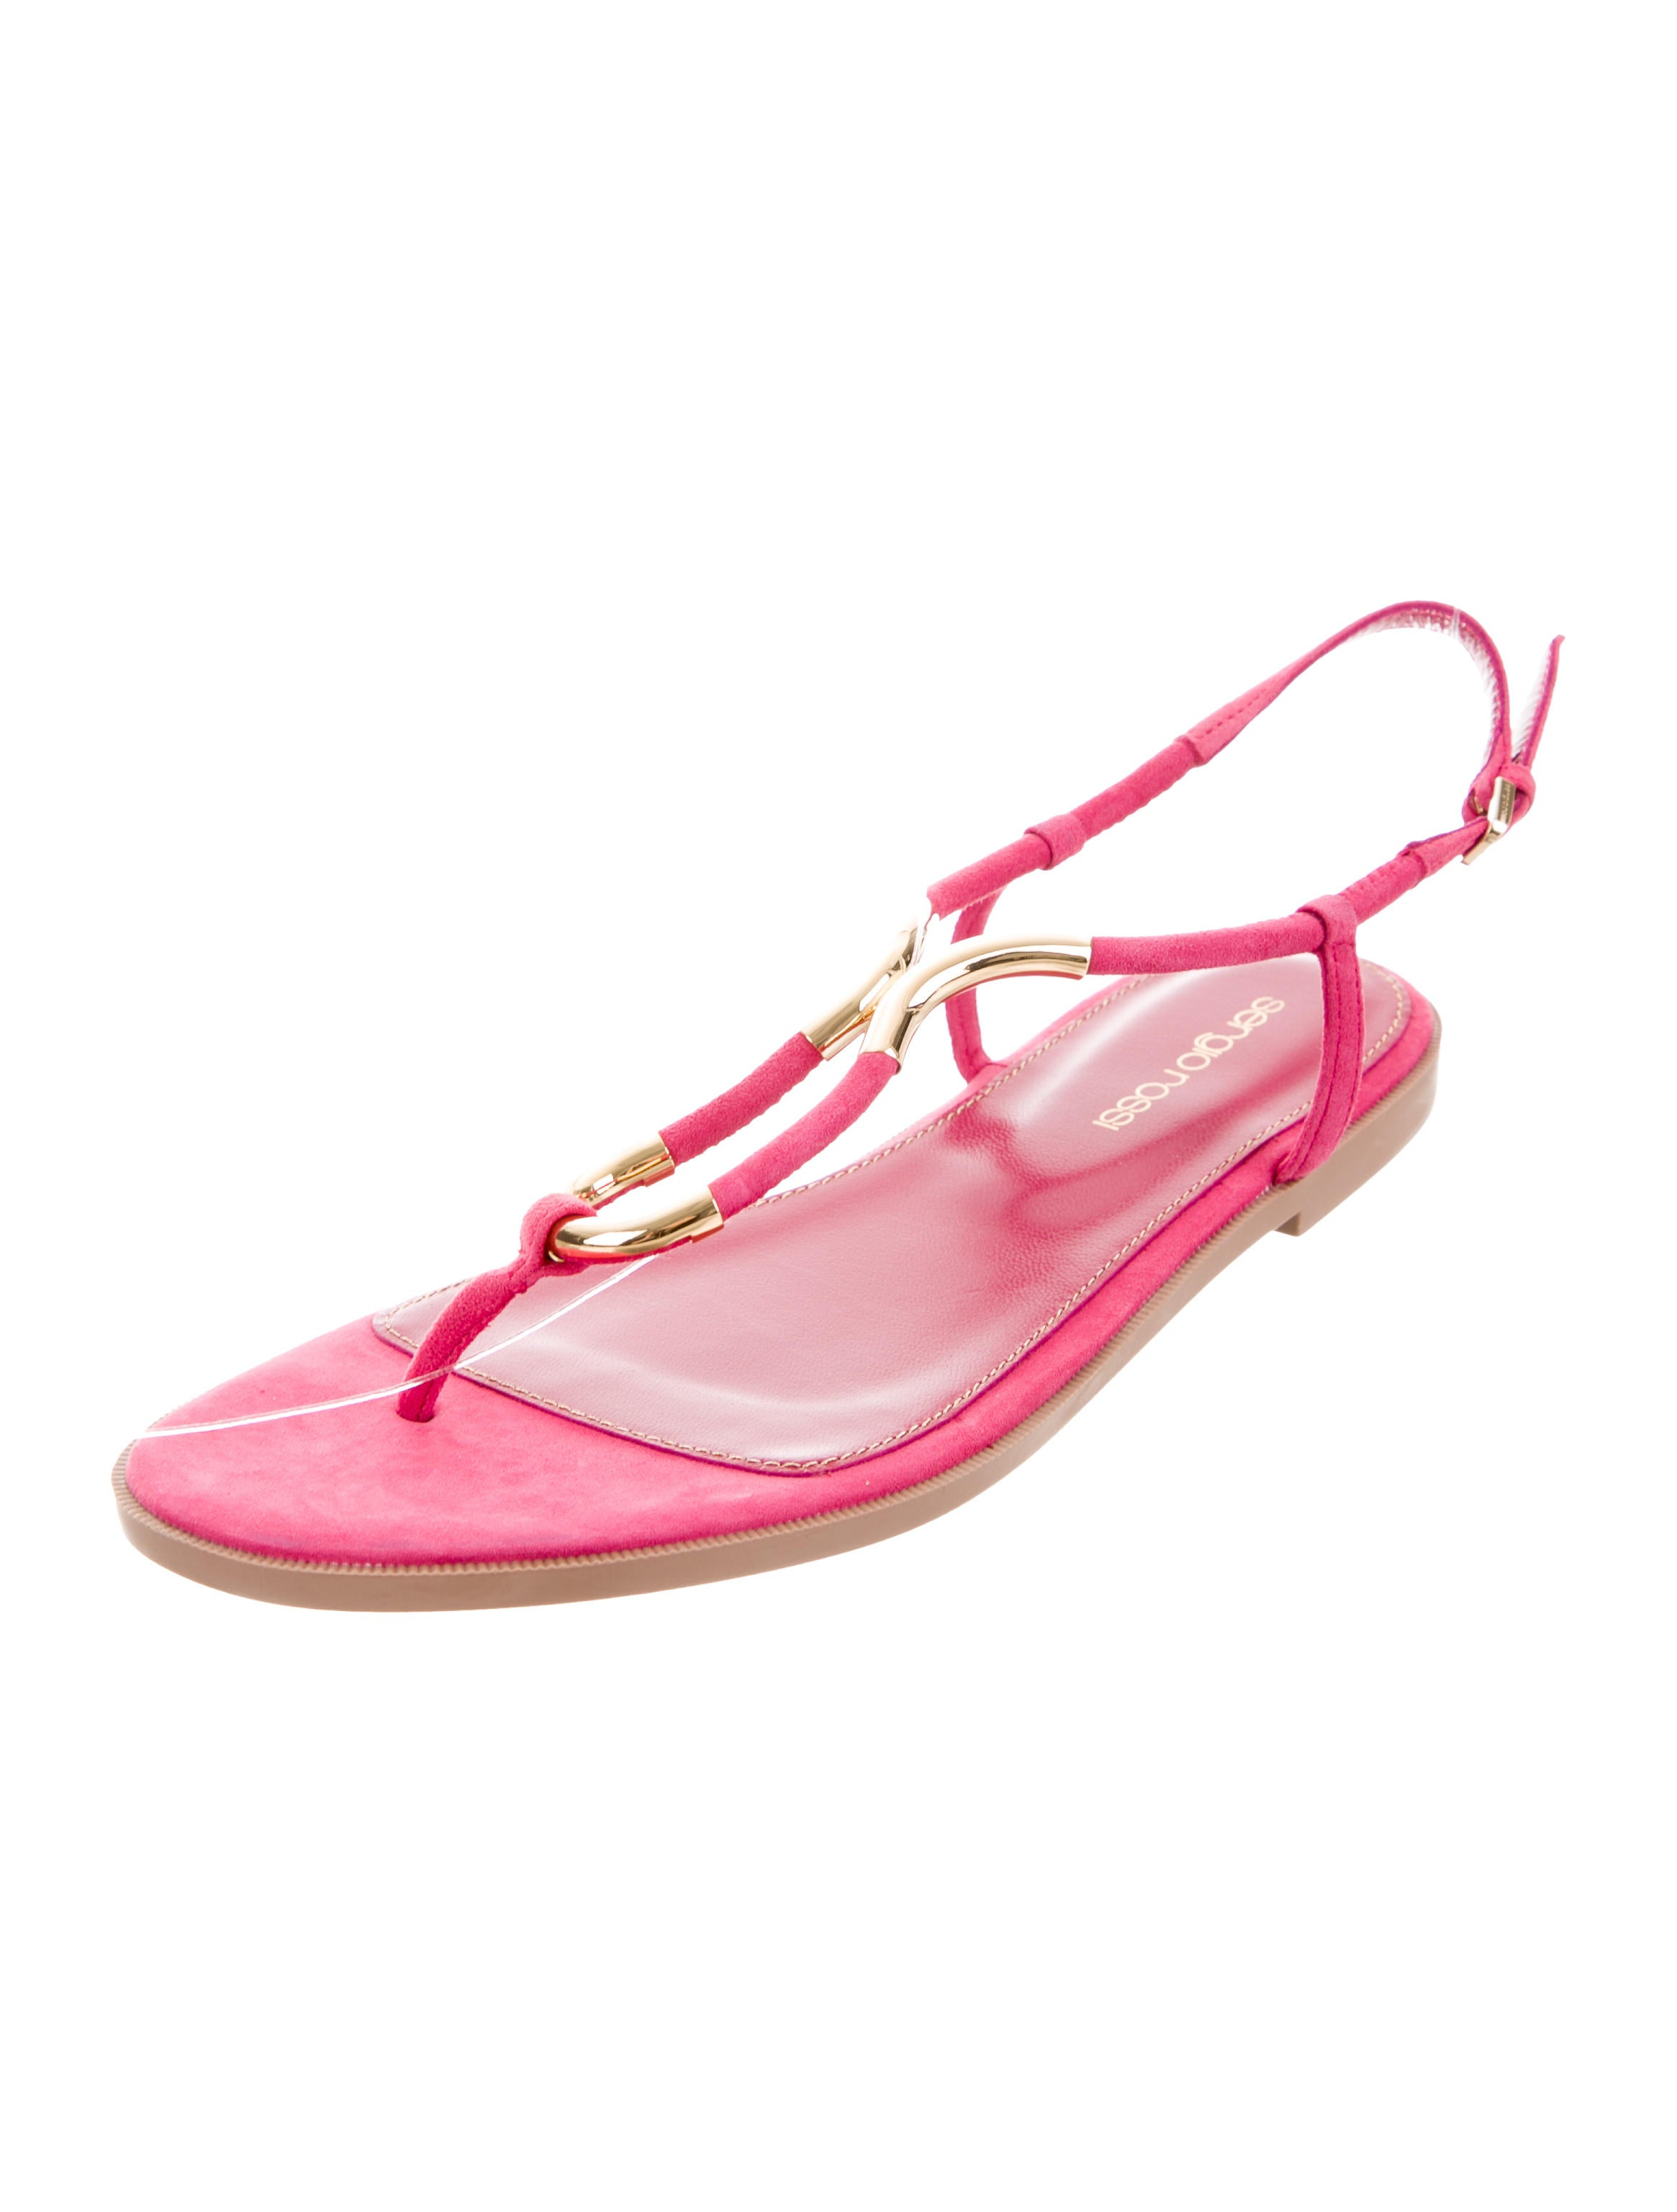 big sale cheap price Sergio Rossi Twist Embellished Sandals w/ Tags free shipping classic pay with paypal online classic cheap price recommend cheap price 8yK7gMfdV